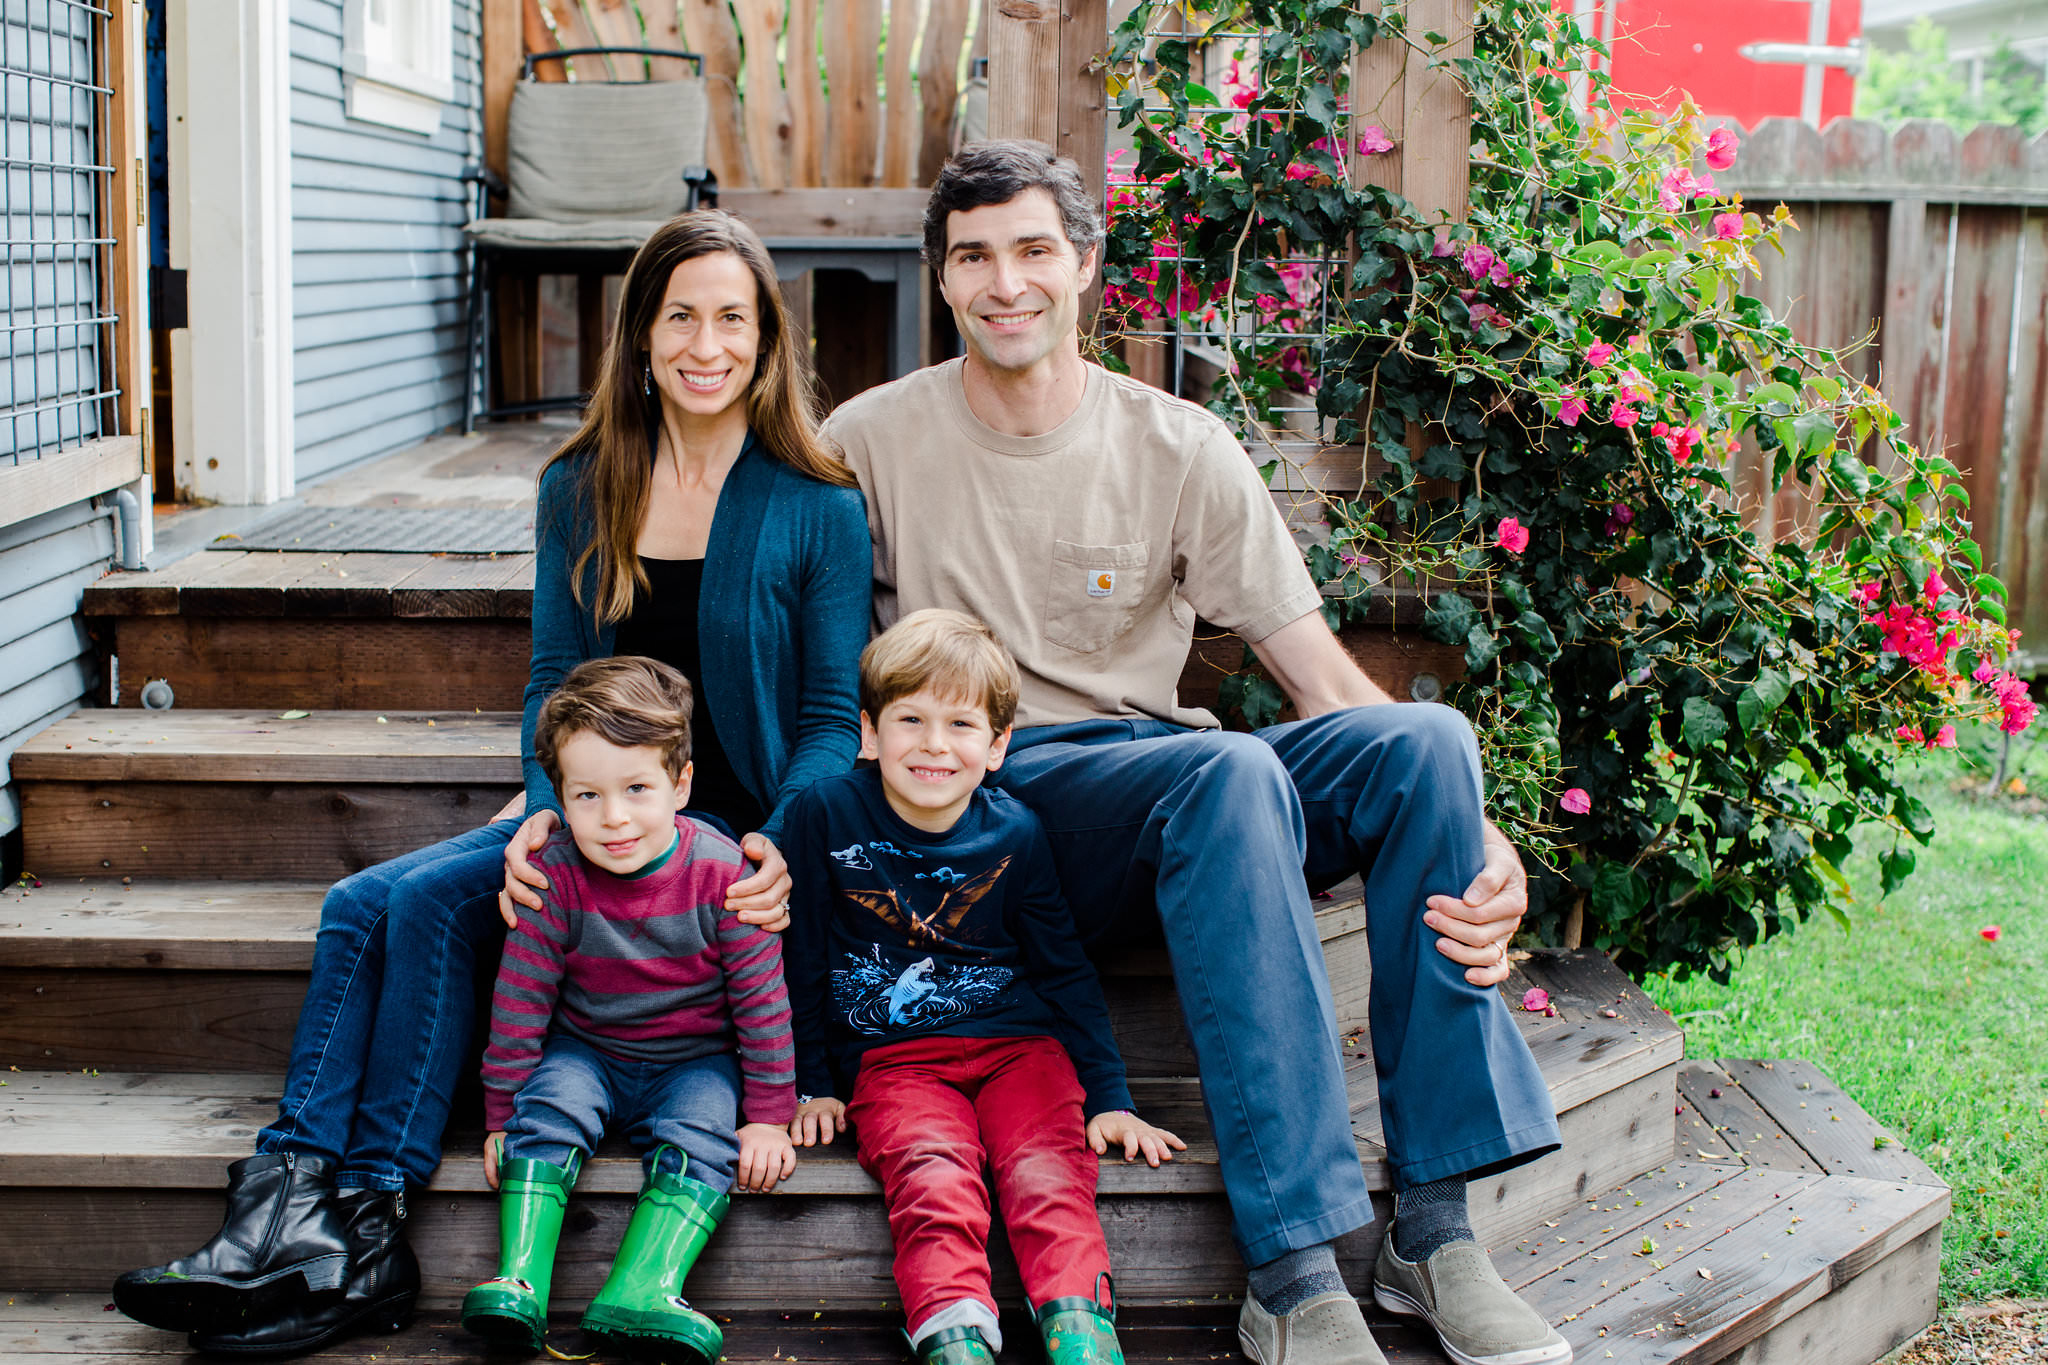 Family photo session at tiny house in San Francisco